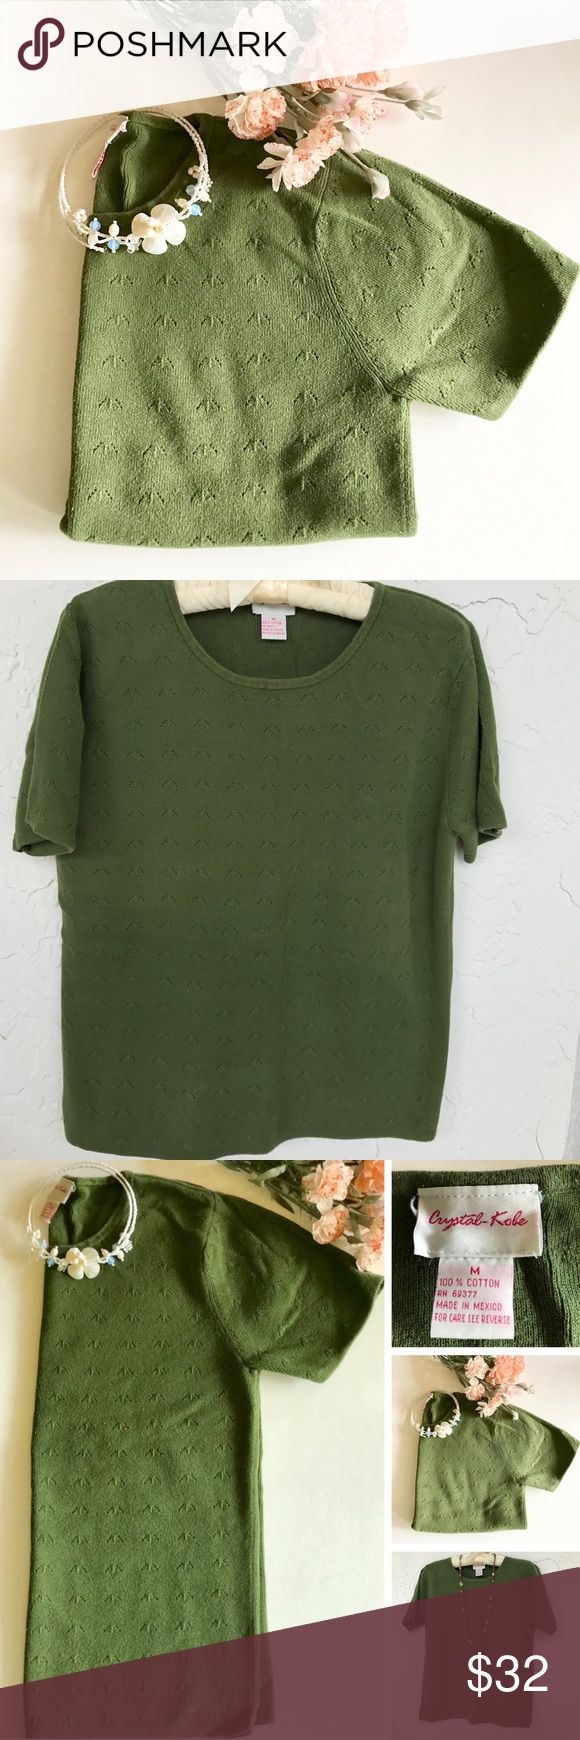 🆕 100% Cotton Sweater New Listing! 100% cotton sweater/top in a lovely shade of green. Pretty design. Versatile! Great with skirts, pants, jeans, shorts, capris… And for work or play! Gently pre-loved. Washable! Sweaters